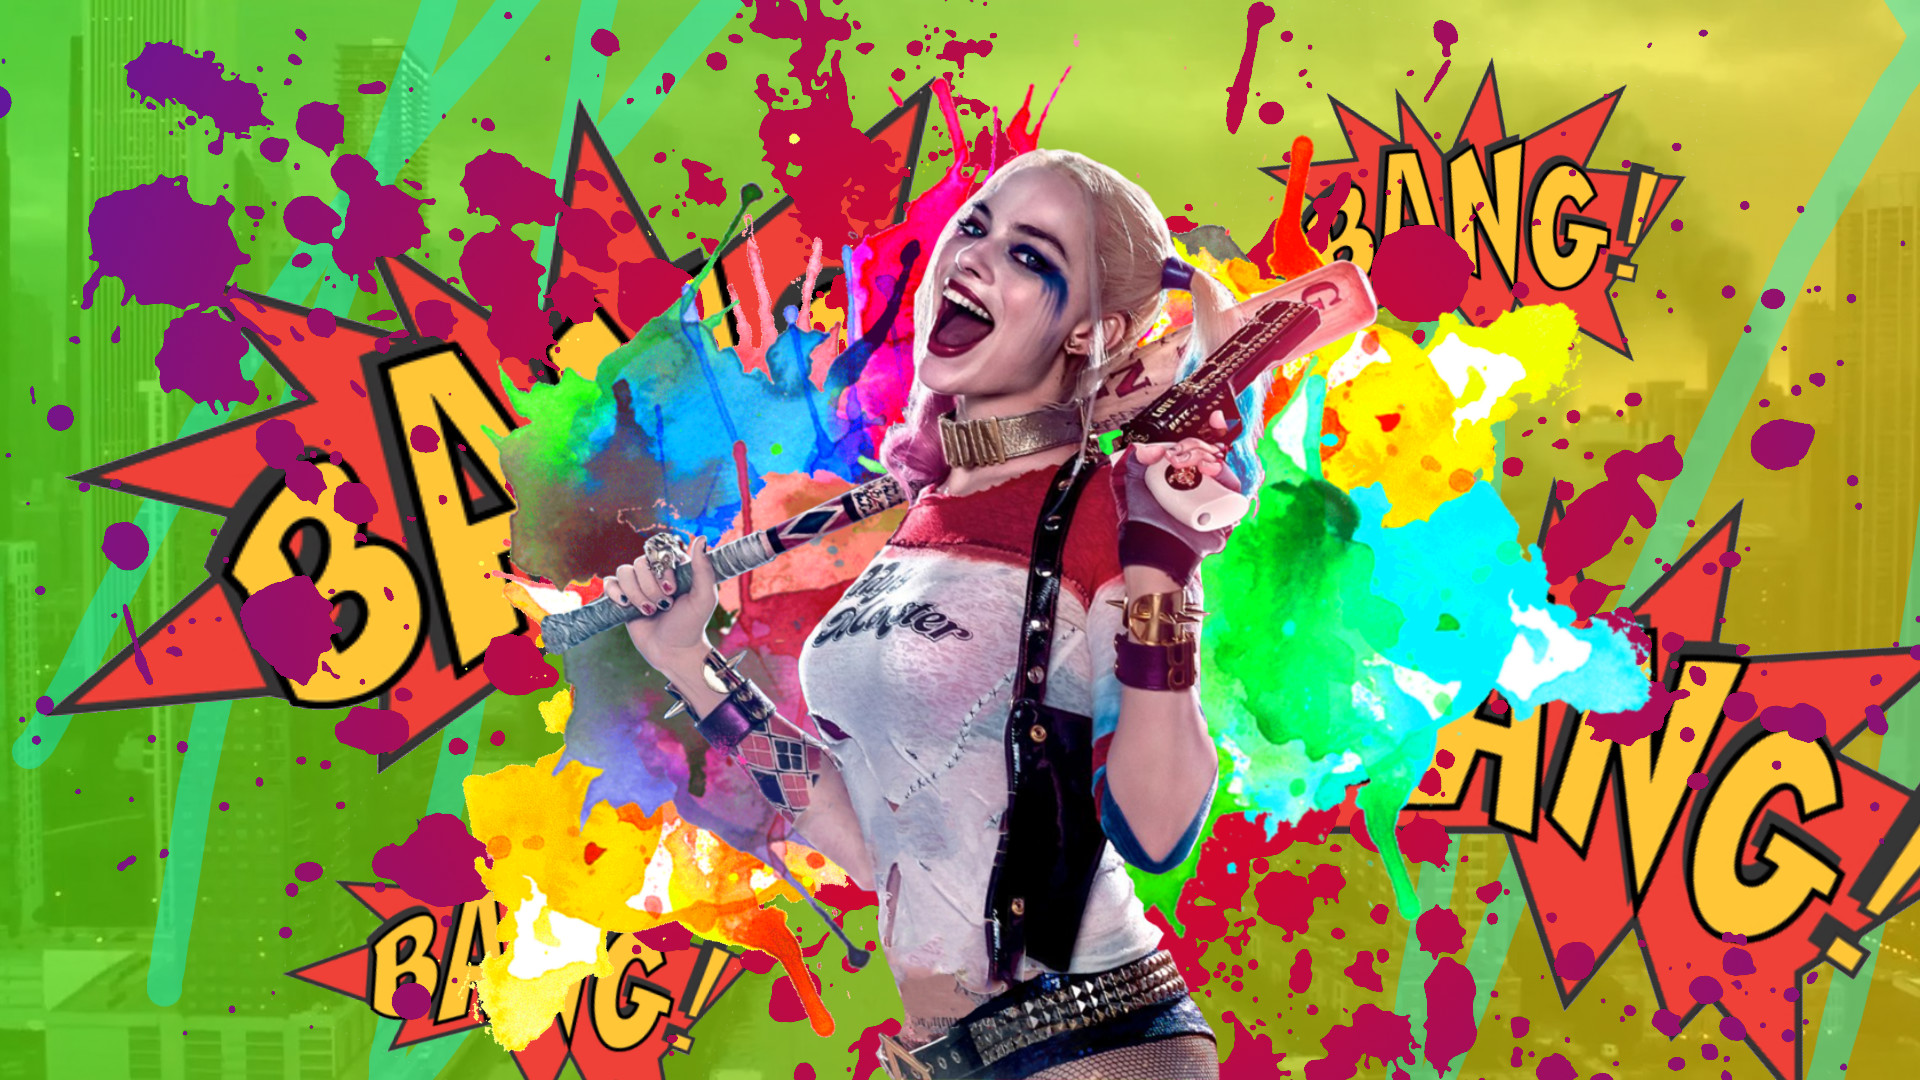 Harley Quinn Wallpaper Suicide Squad: Joker And Harley Quinn Wallpaper (71+ Images